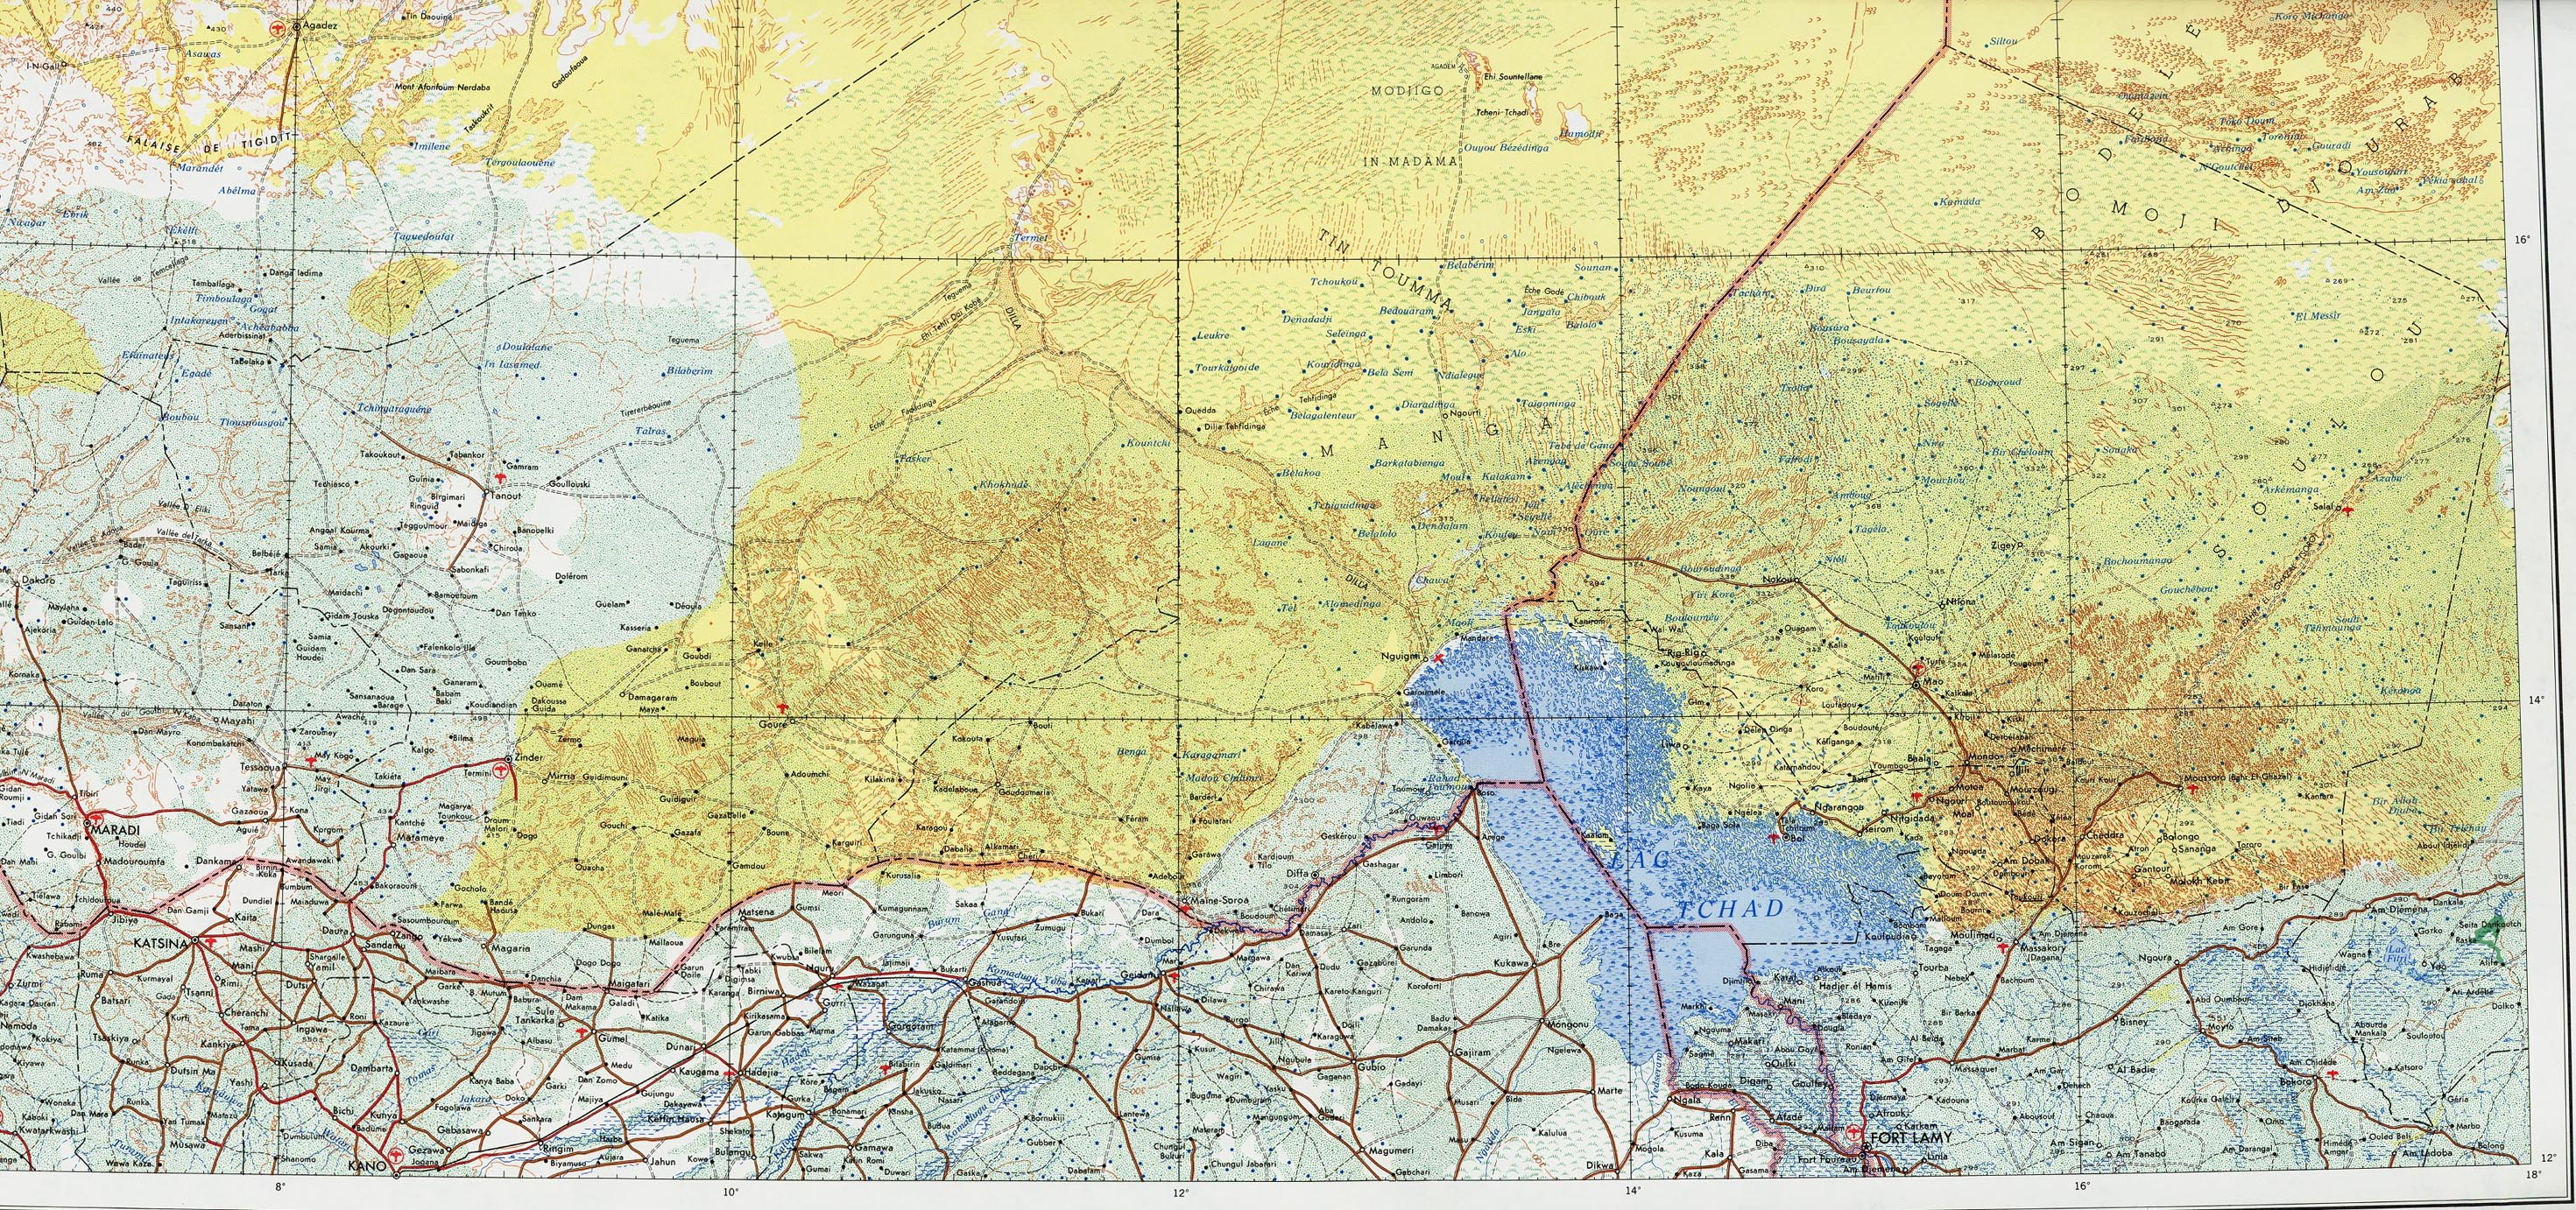 Topographic Map of Lake Chad Area and Eastern Niger